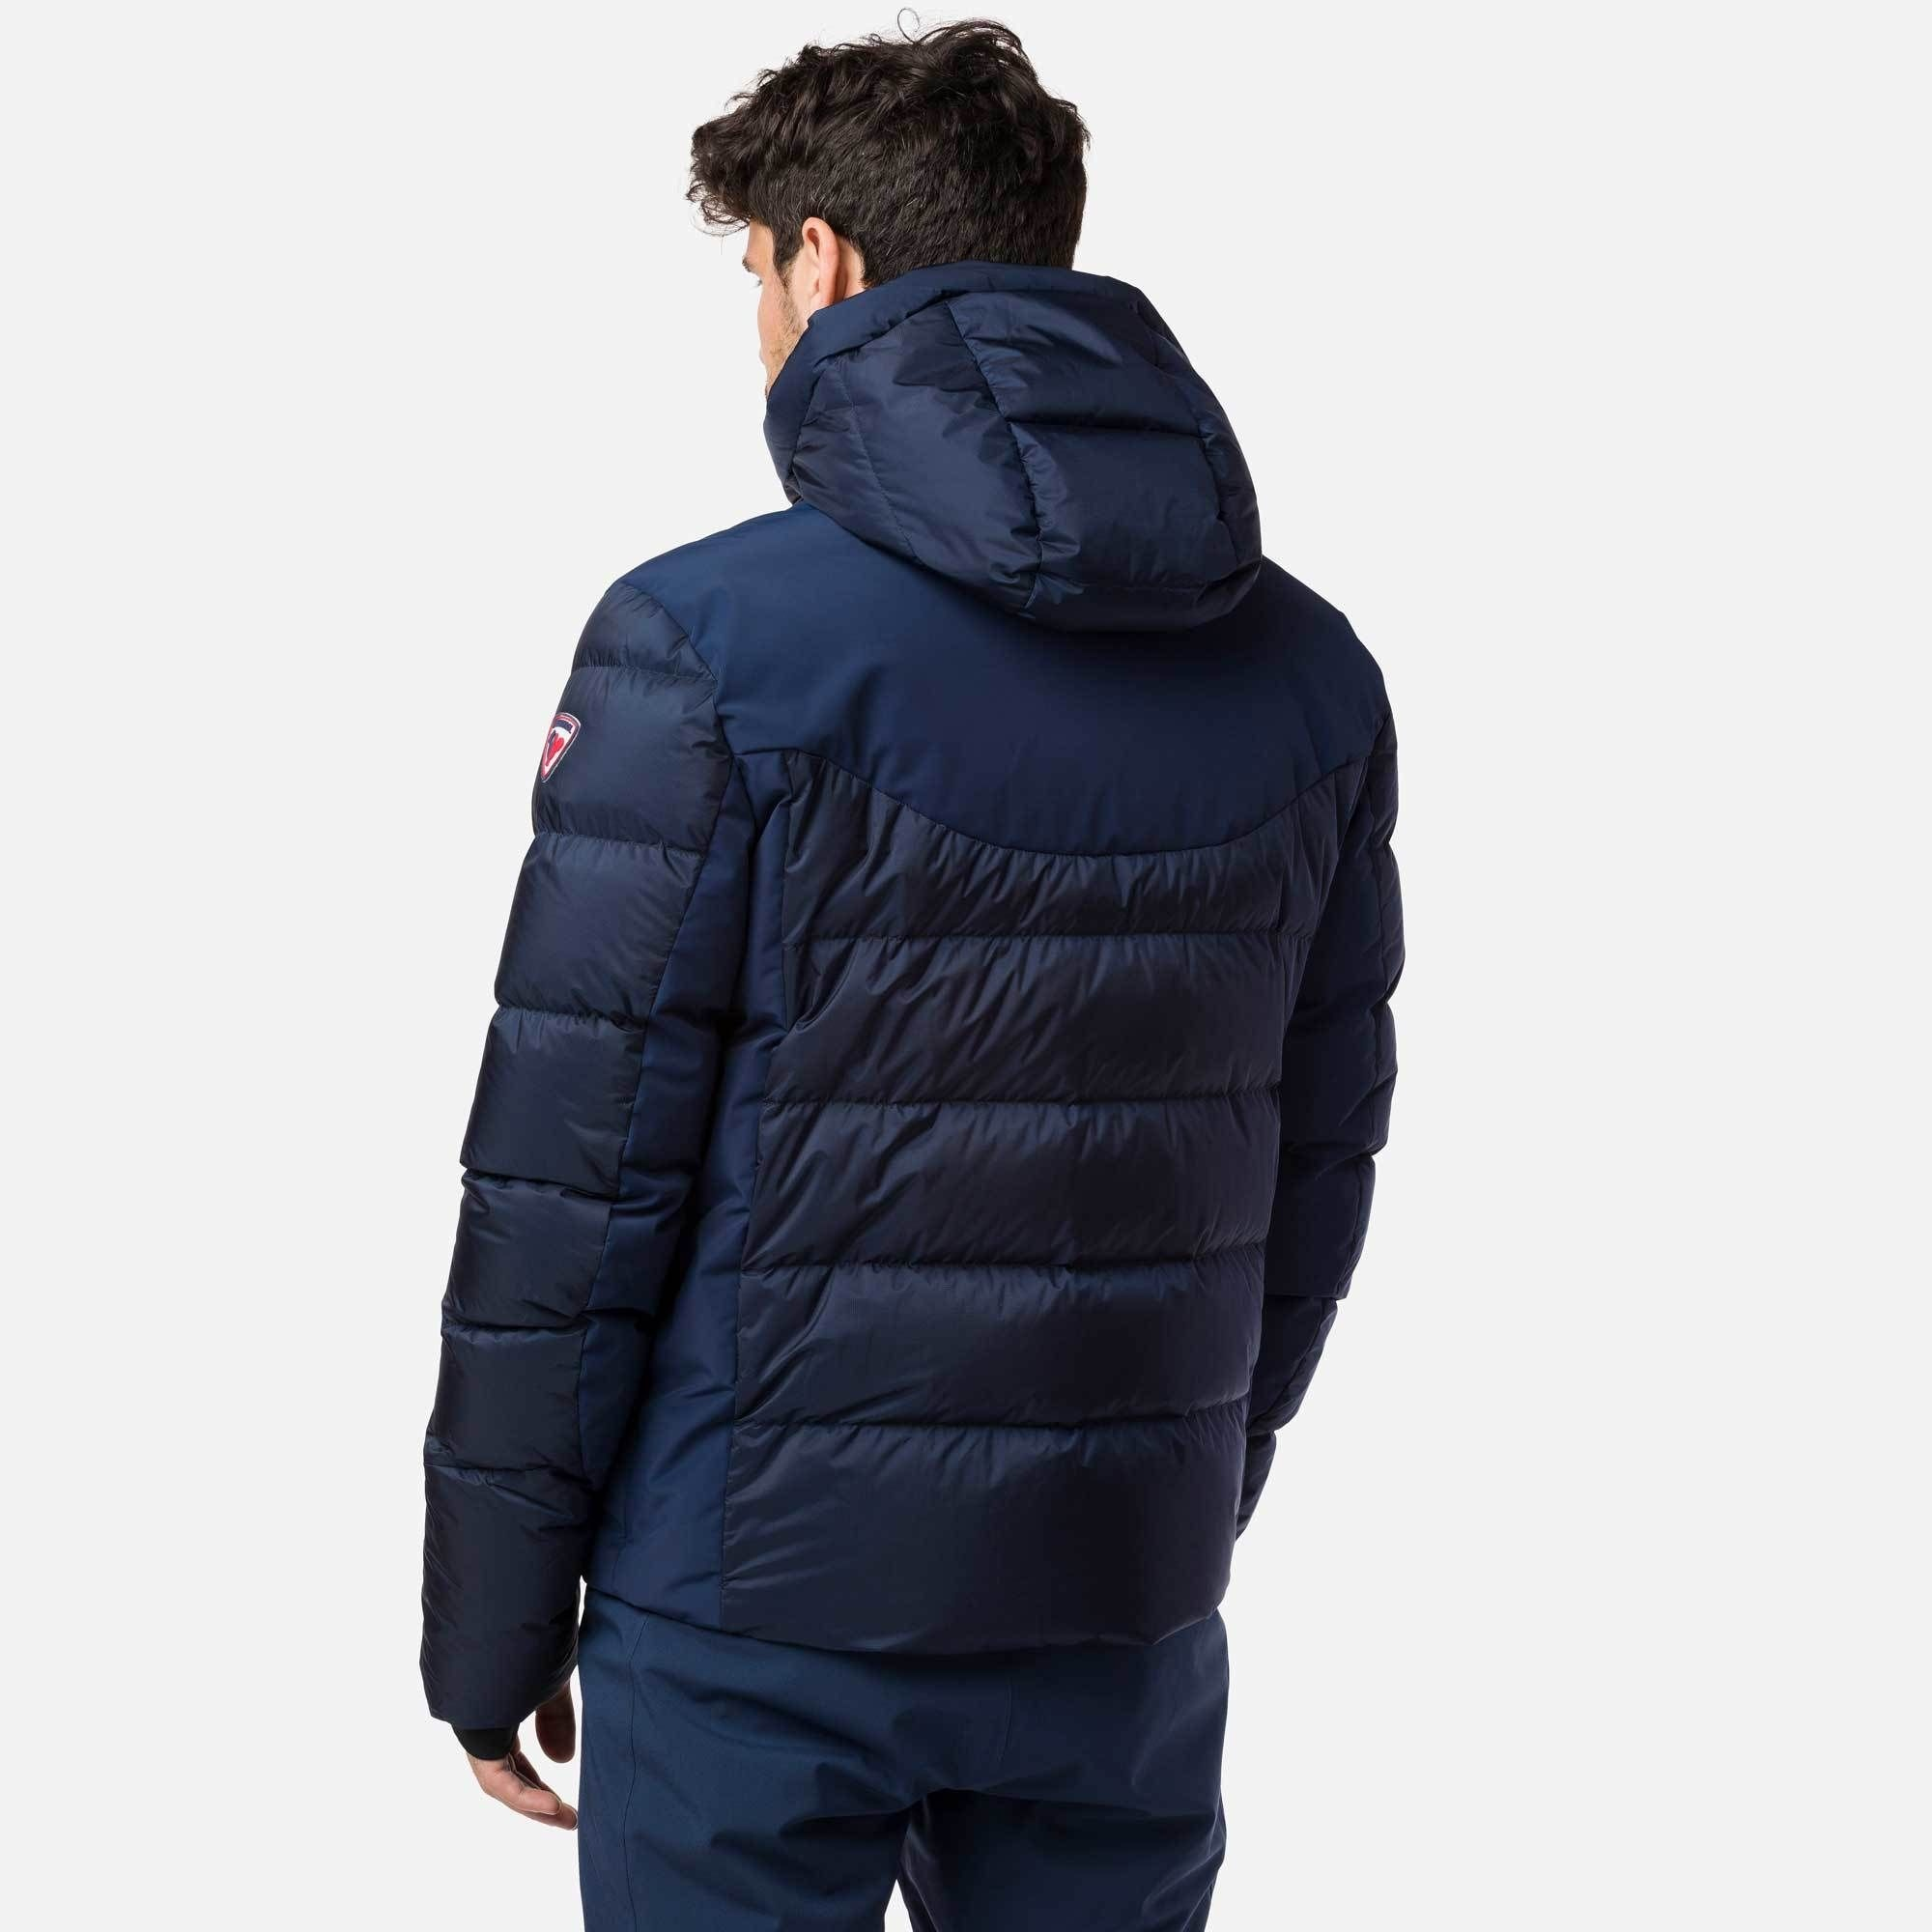 Hiver Down Jacket, Dark Navy M